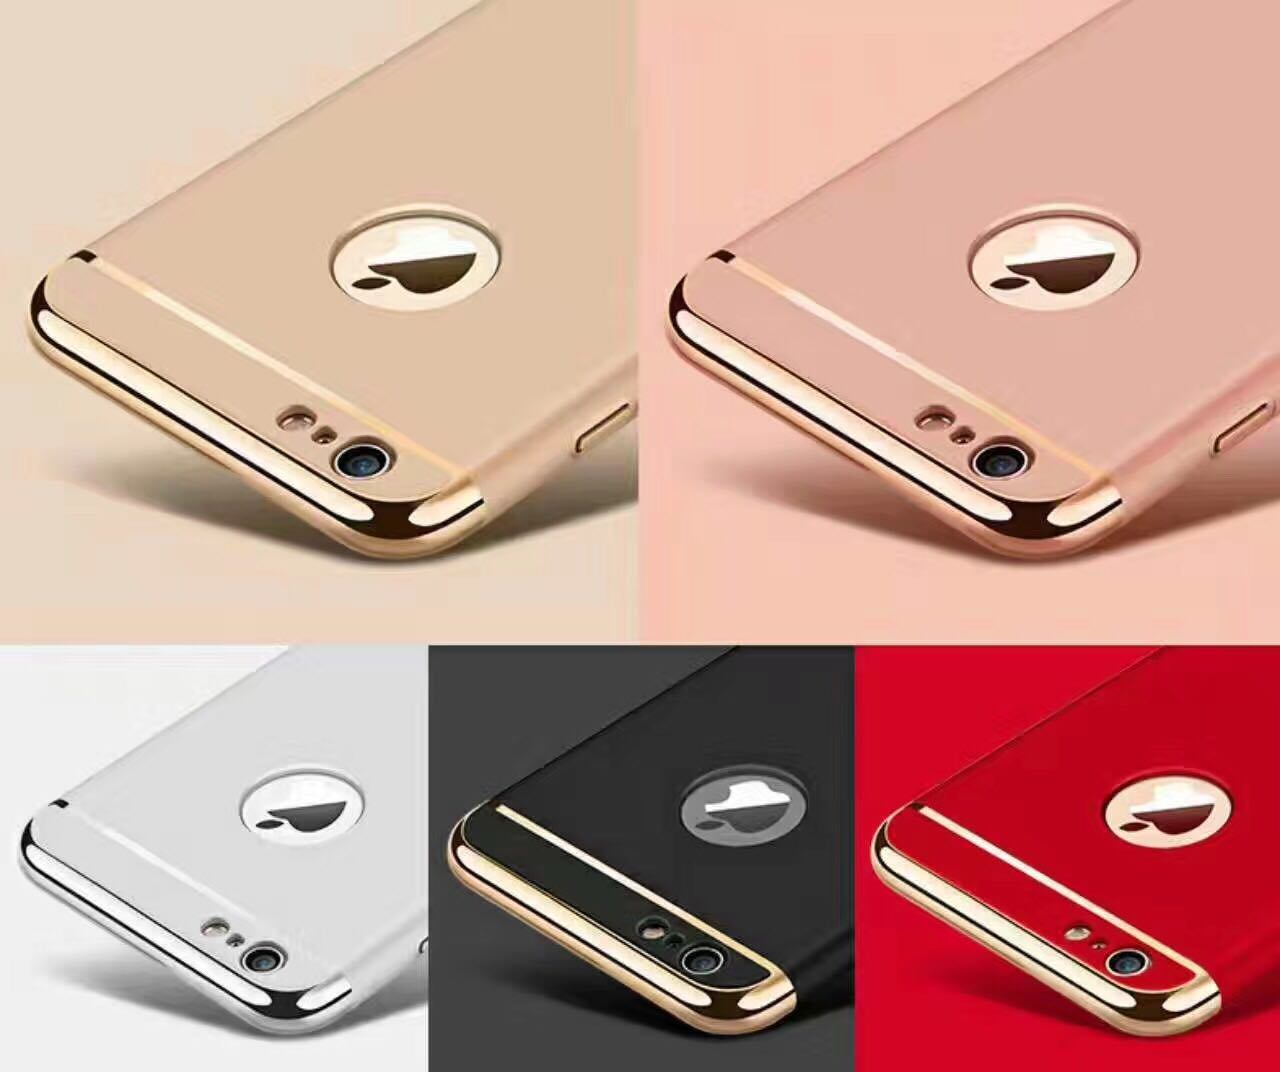 Hot Sale PC Mobile Phone Case for iPhone7/7+/6/6+/6s/6s+